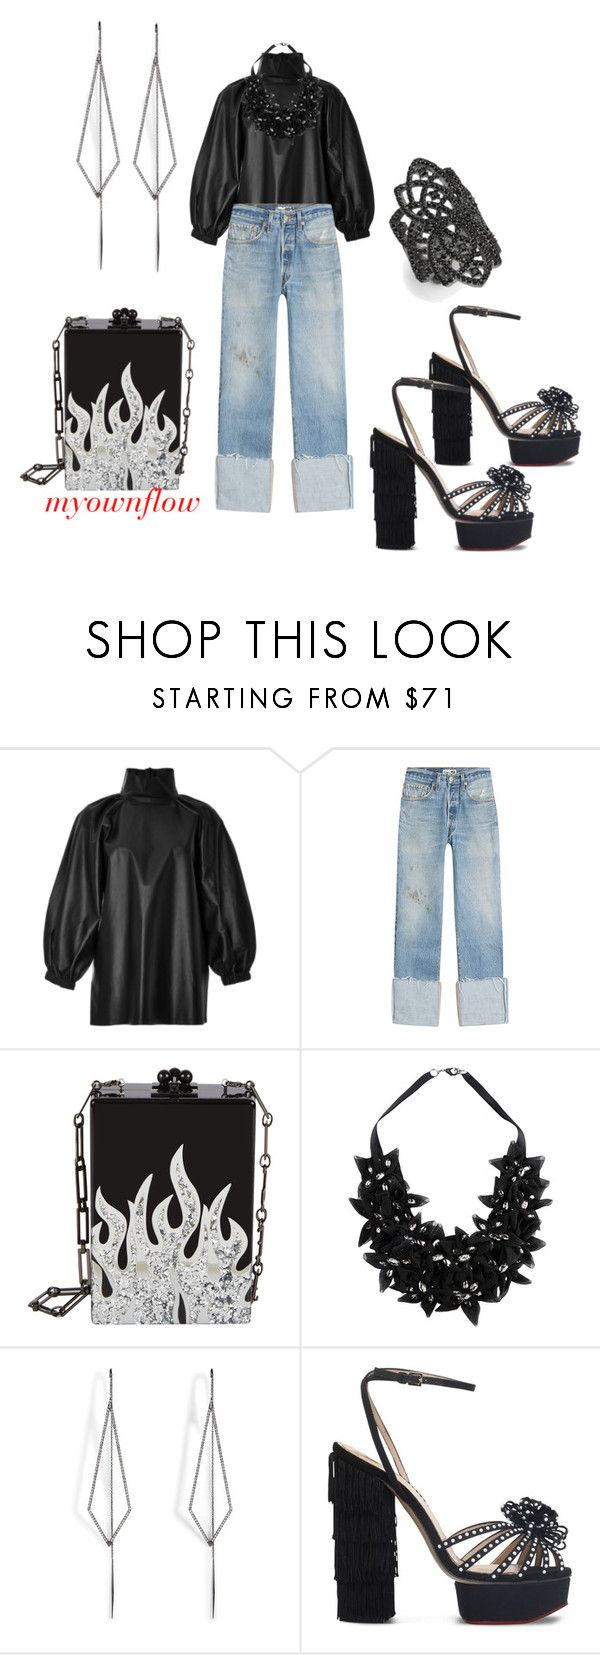 """""""MYOWNFLOW"""" by myownflow ❤ liked on Polyvore featuring Zeynep Arçay, RE/DONE, Stefanel, Diane Kordas, Charlotte Olympia and Noir"""